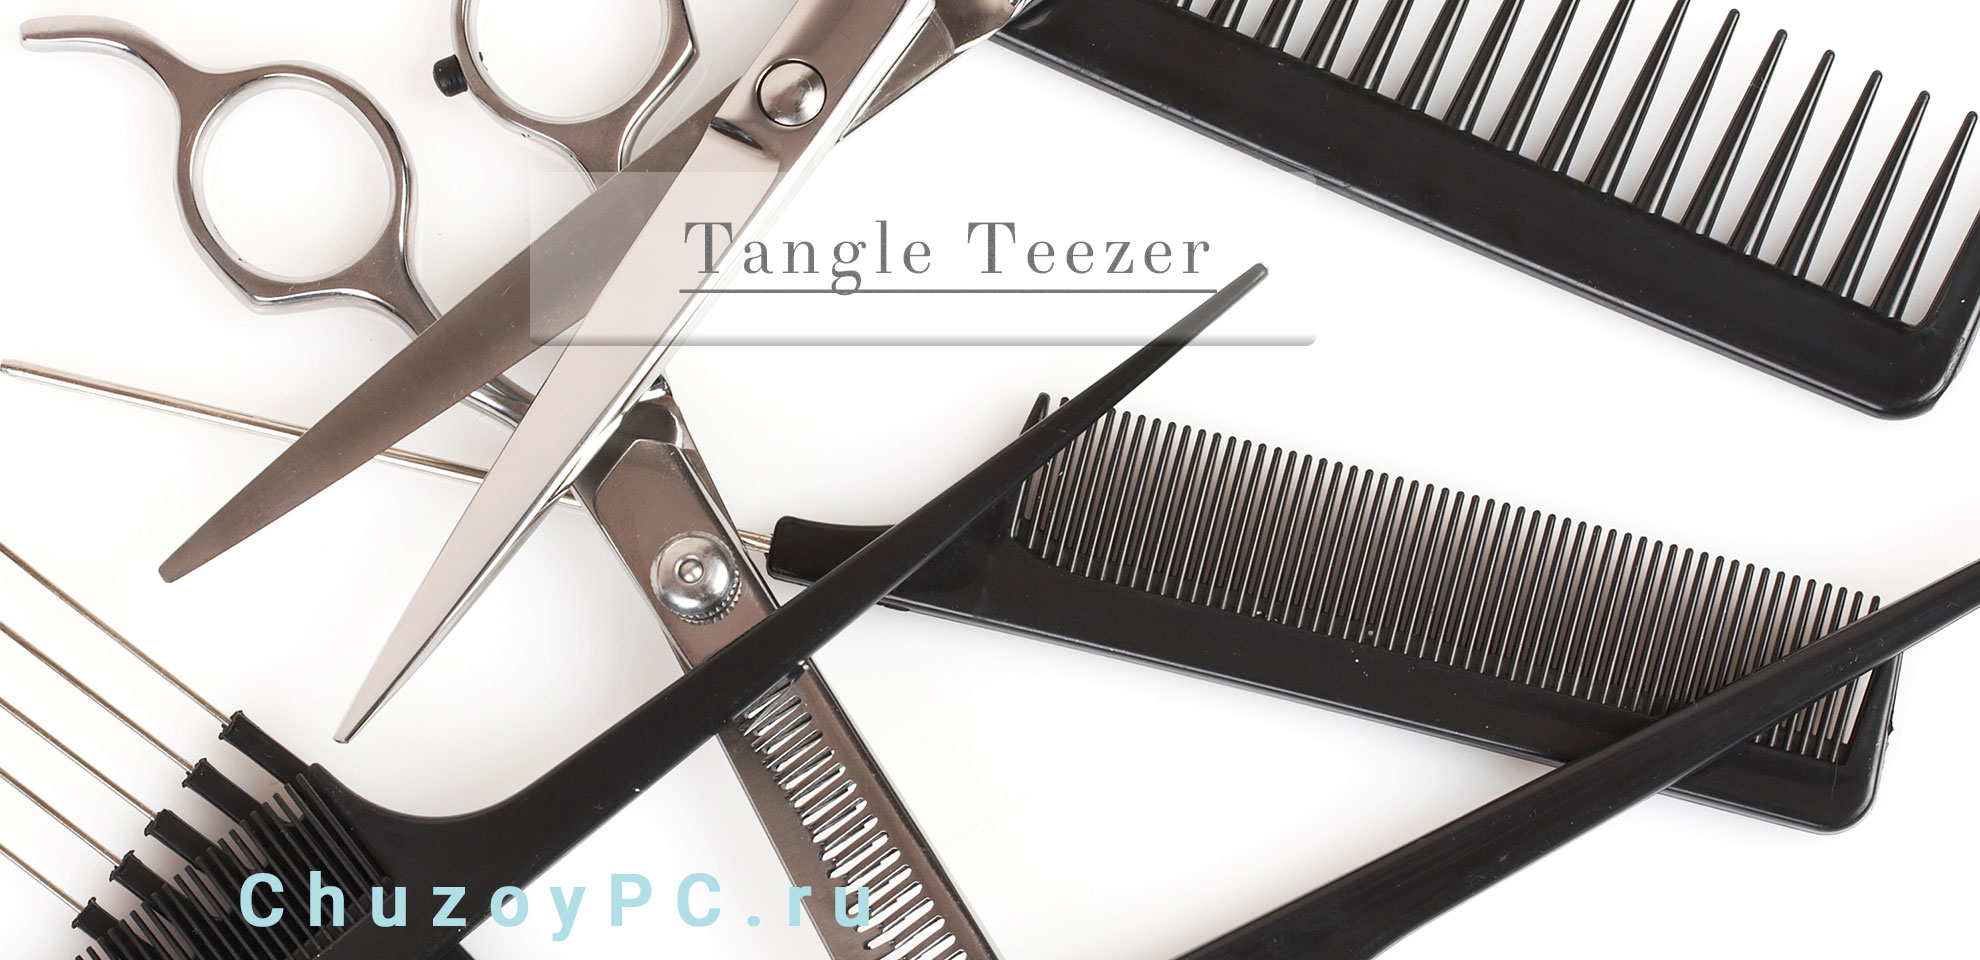 Chuzoypc-Tangle-Teezer